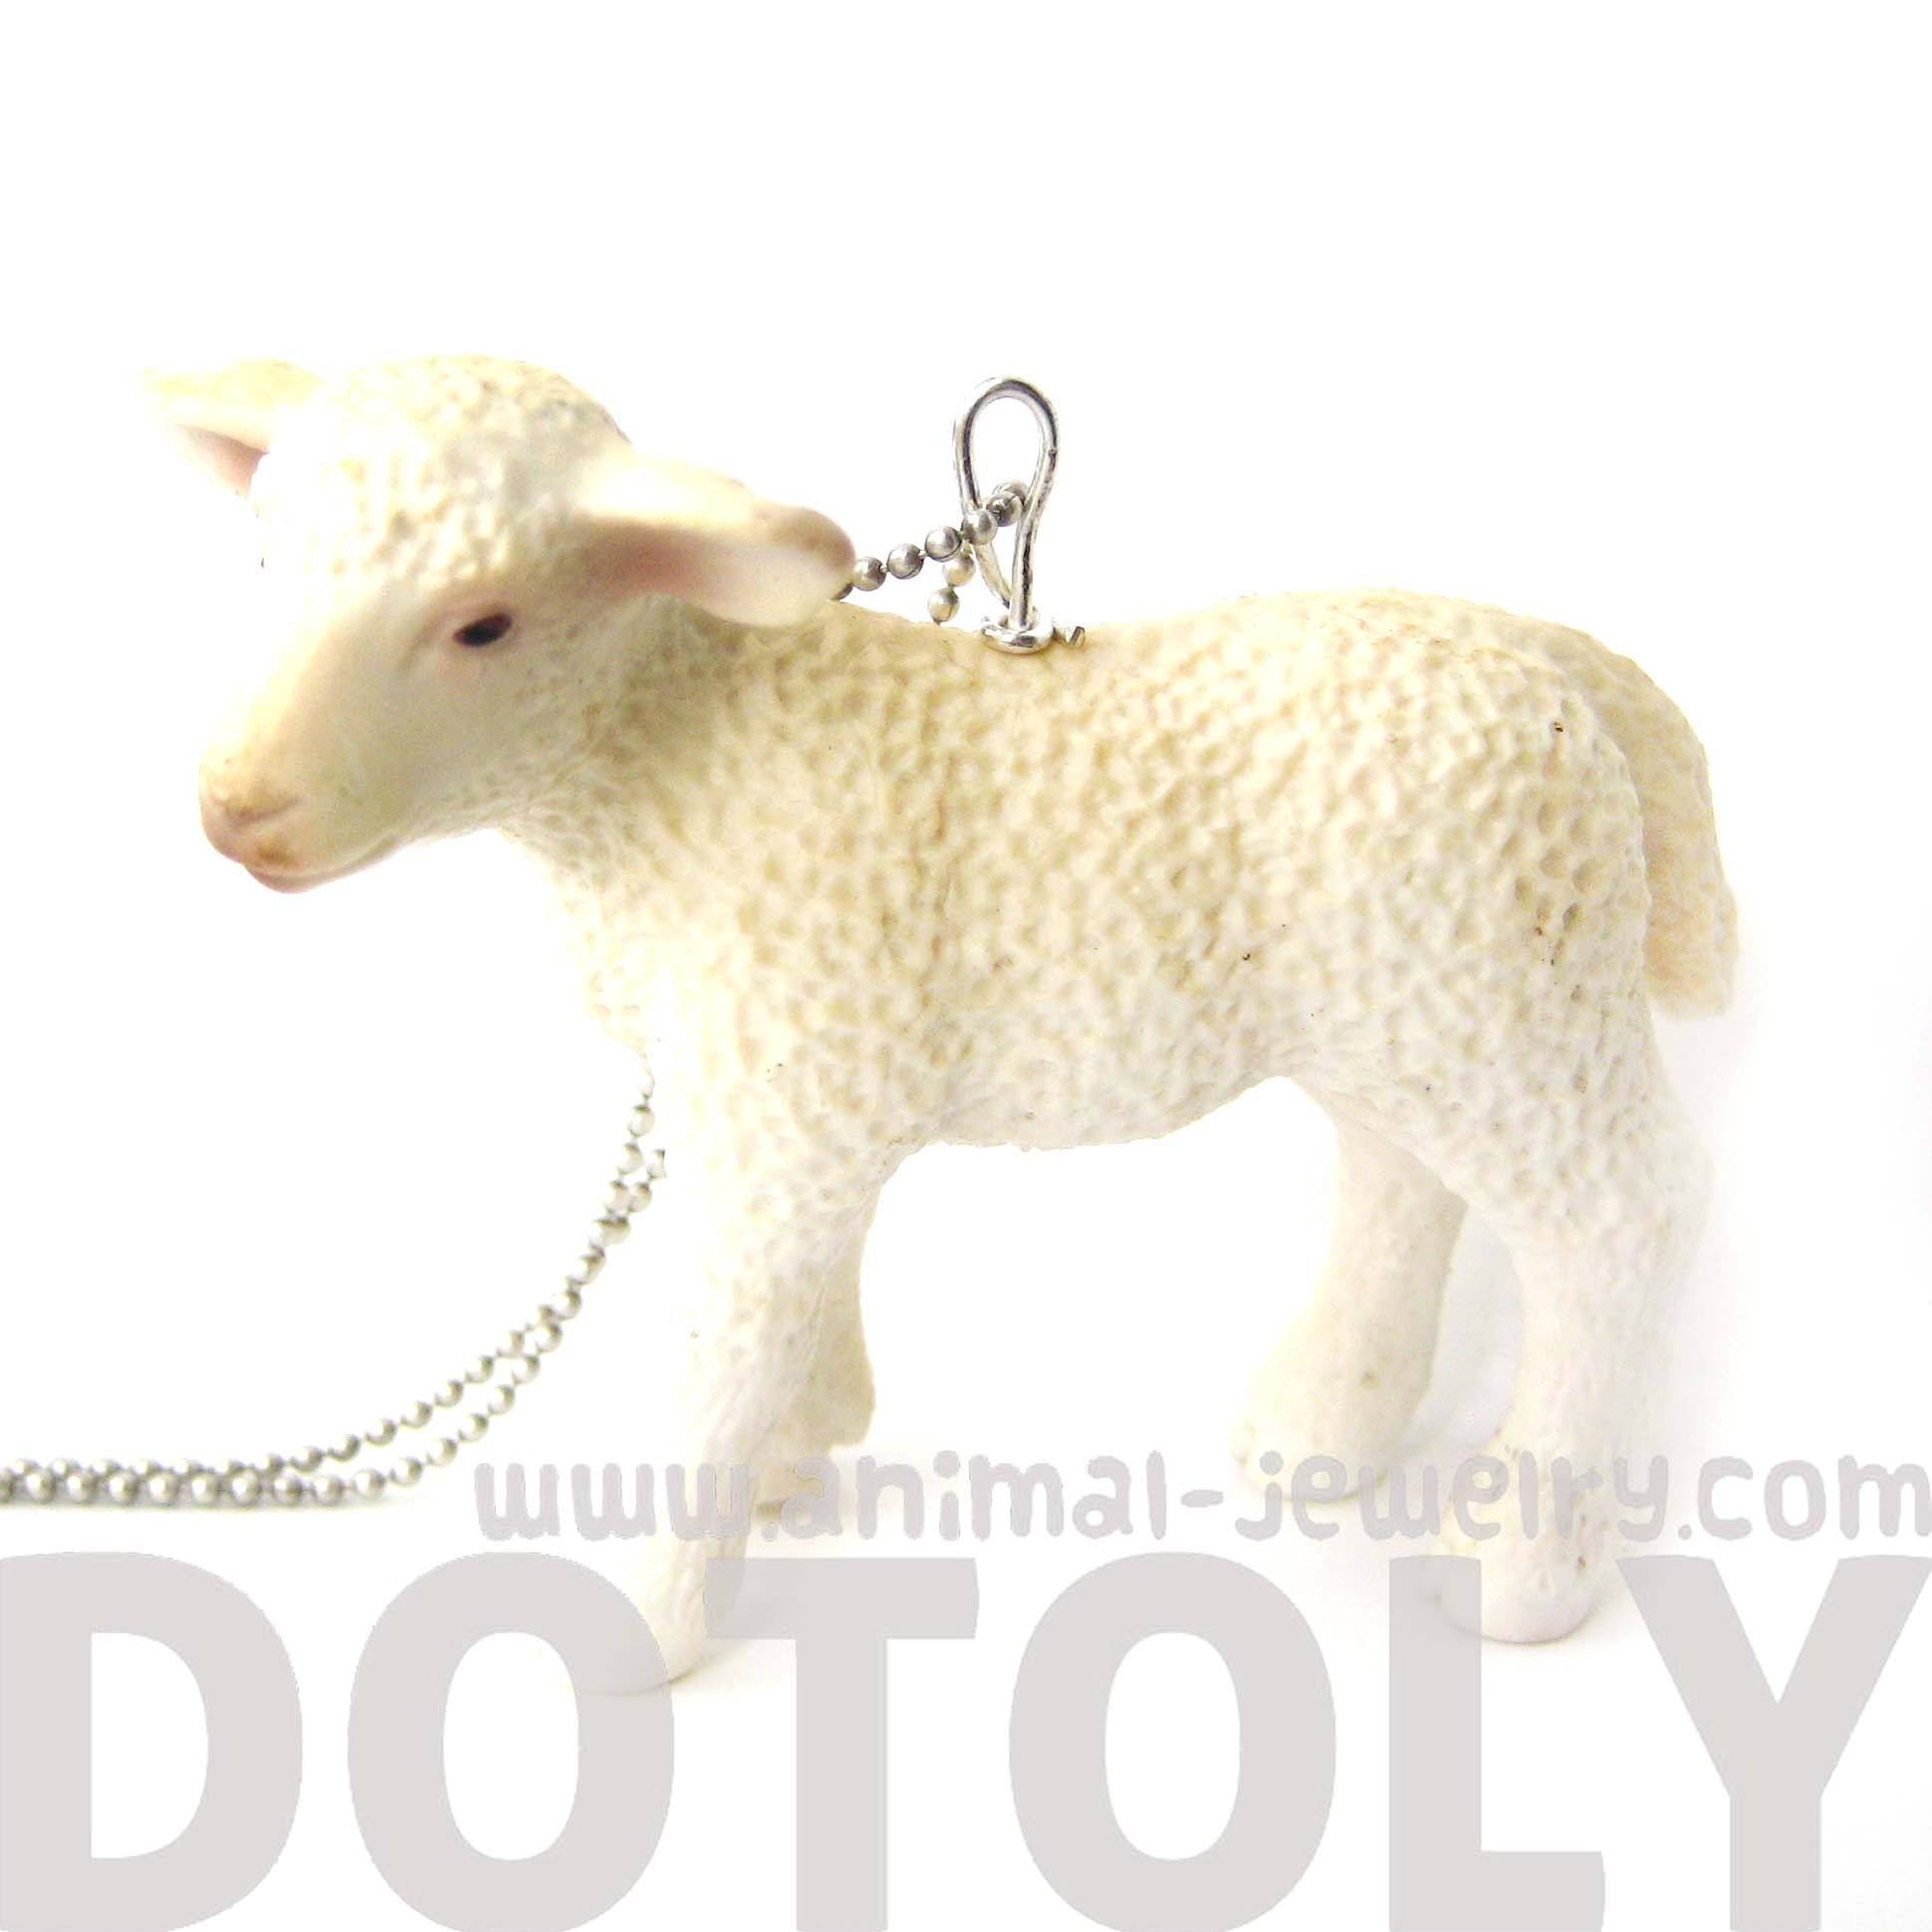 baby-sheep-lamb-animal-plastic-pendant-necklace-animal-jewelry